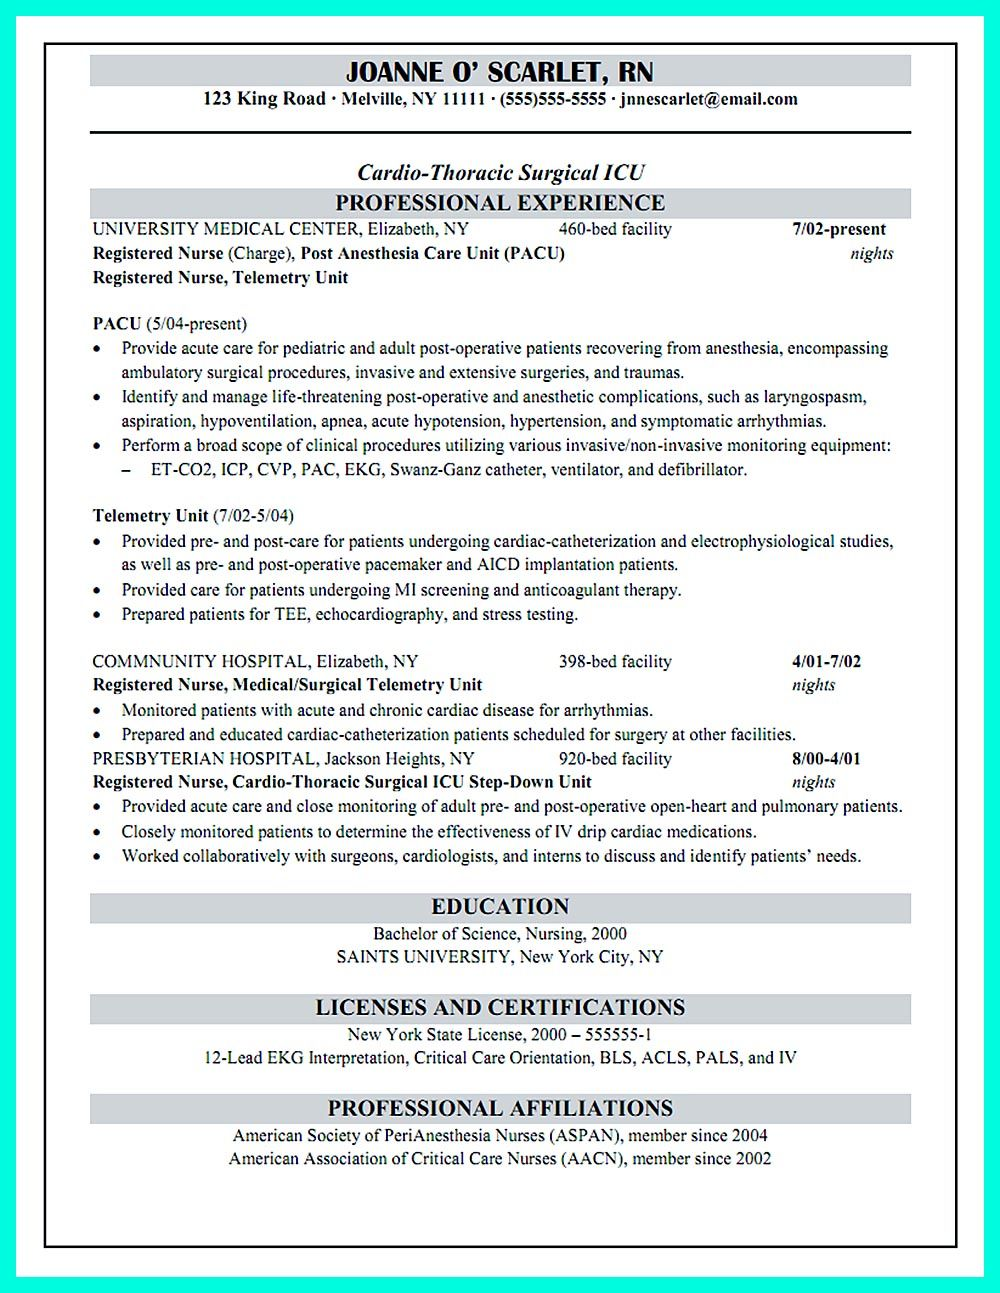 Nursing School Resume Critical Care Nurse Resume Has Skills Or Objectives That Are